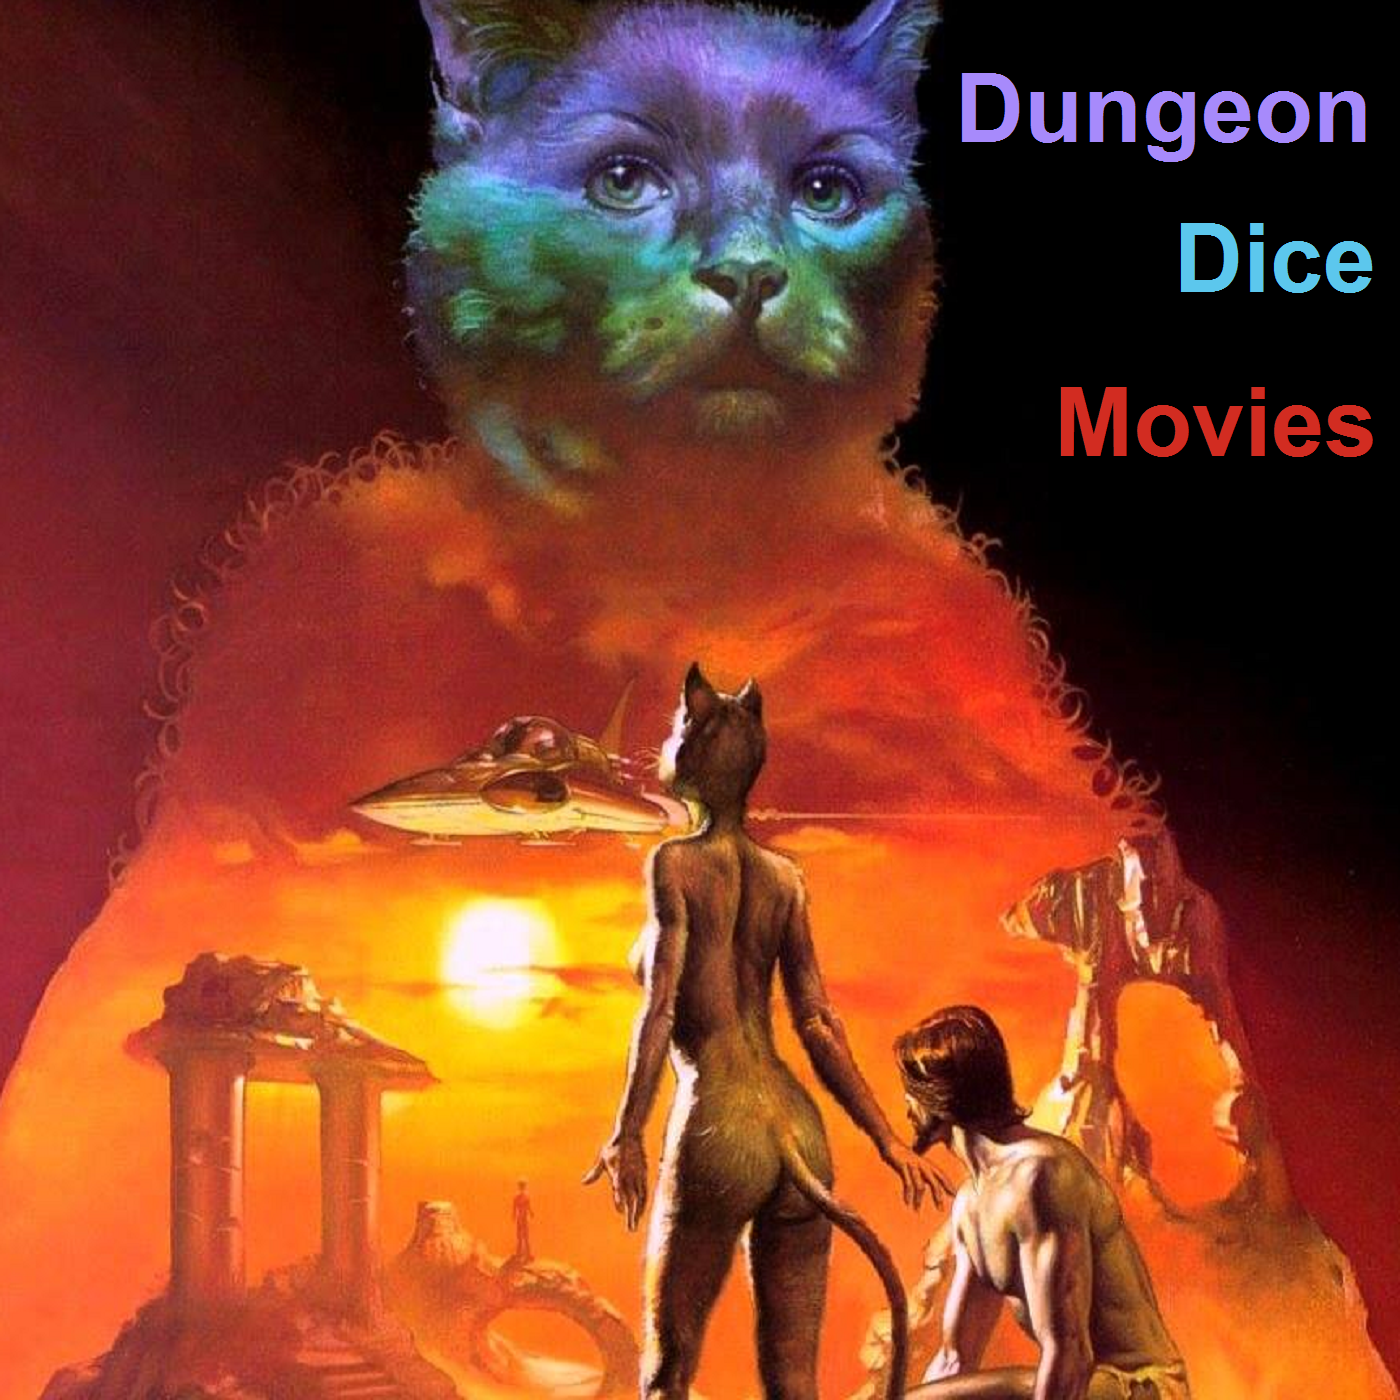 Episodes - Dungeon Dice Movies